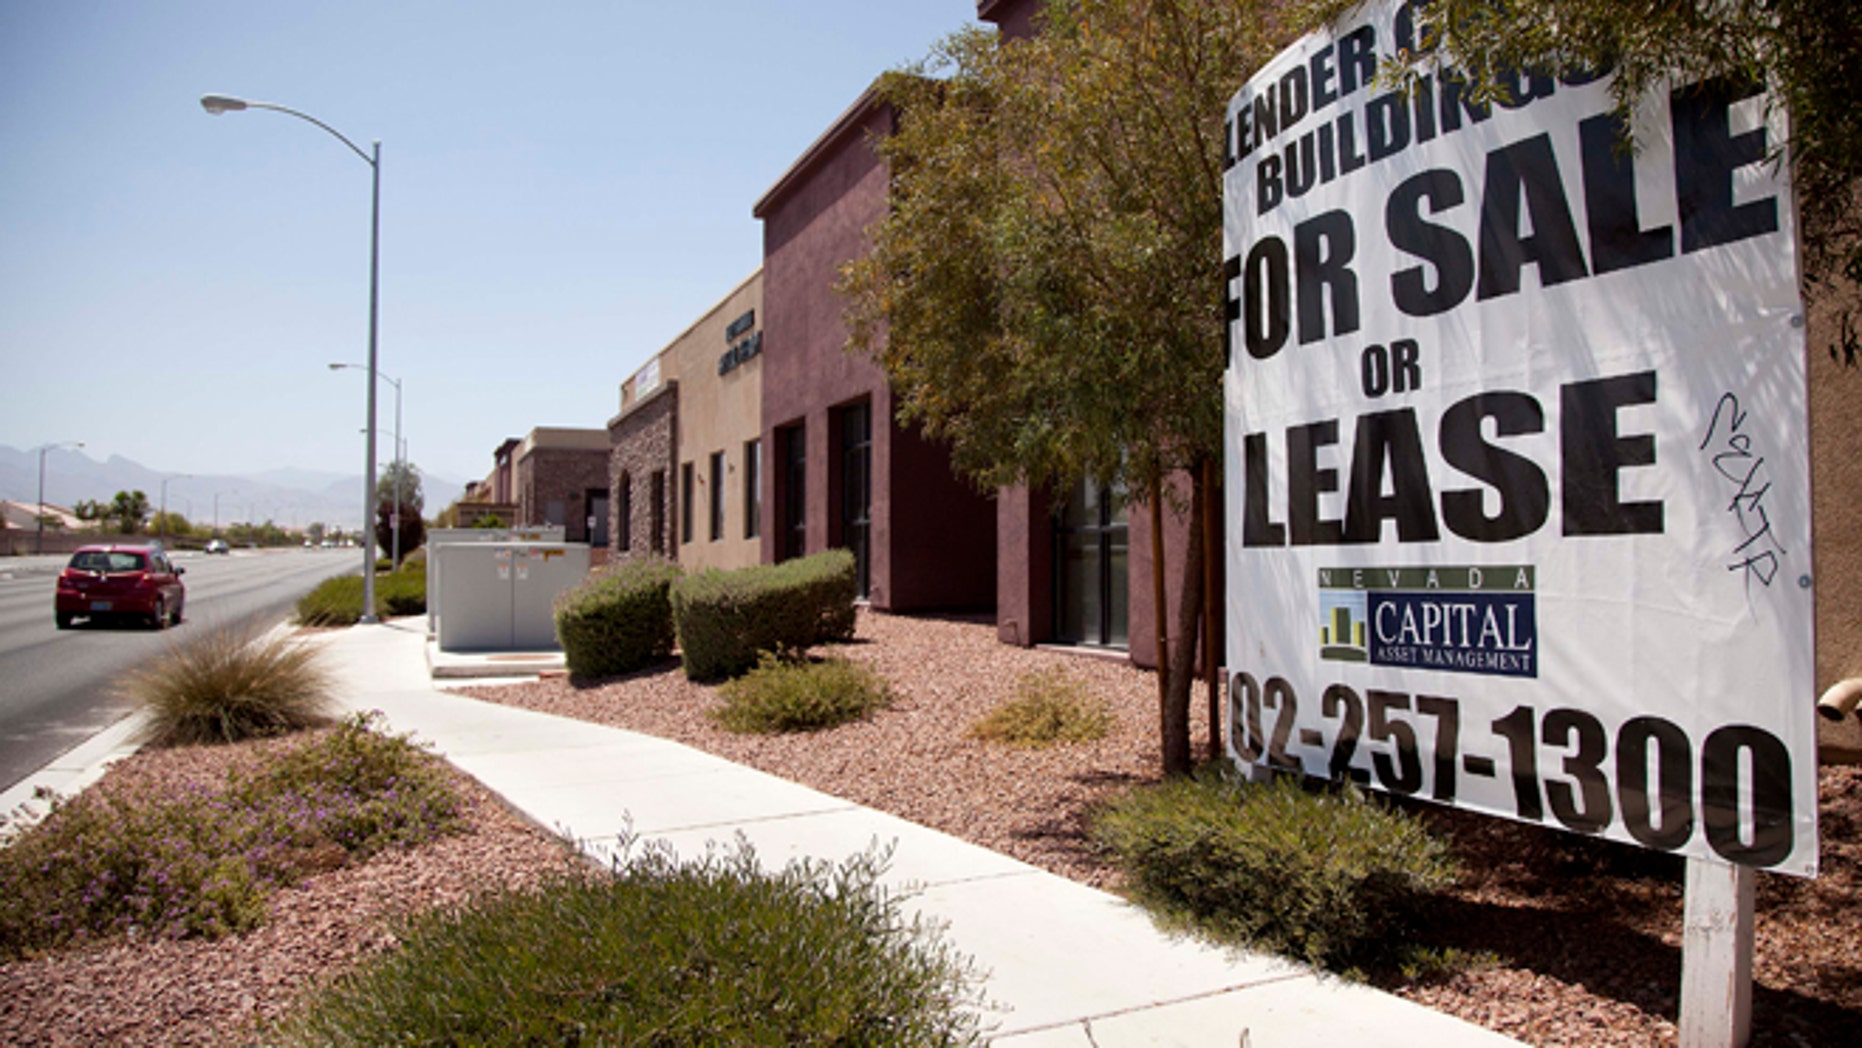 June 21, 2012: A sign advertising empty professional office space for sale or lease is posted outside a building in North Las Vegas, Nev.